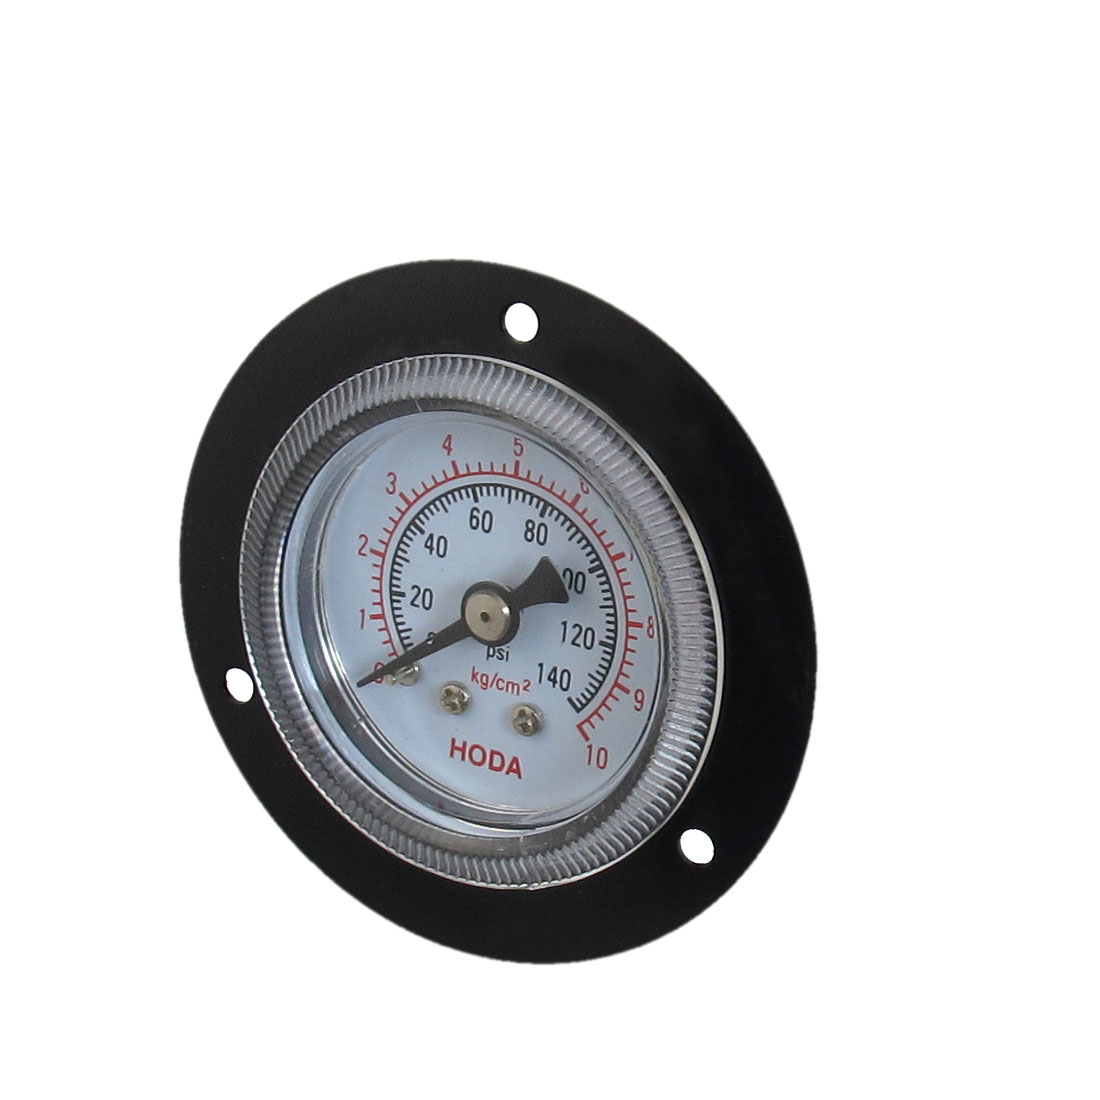 0-140 Psi 1-10kg/cm2 Pneumatic Compressed Air Pressure Gauge